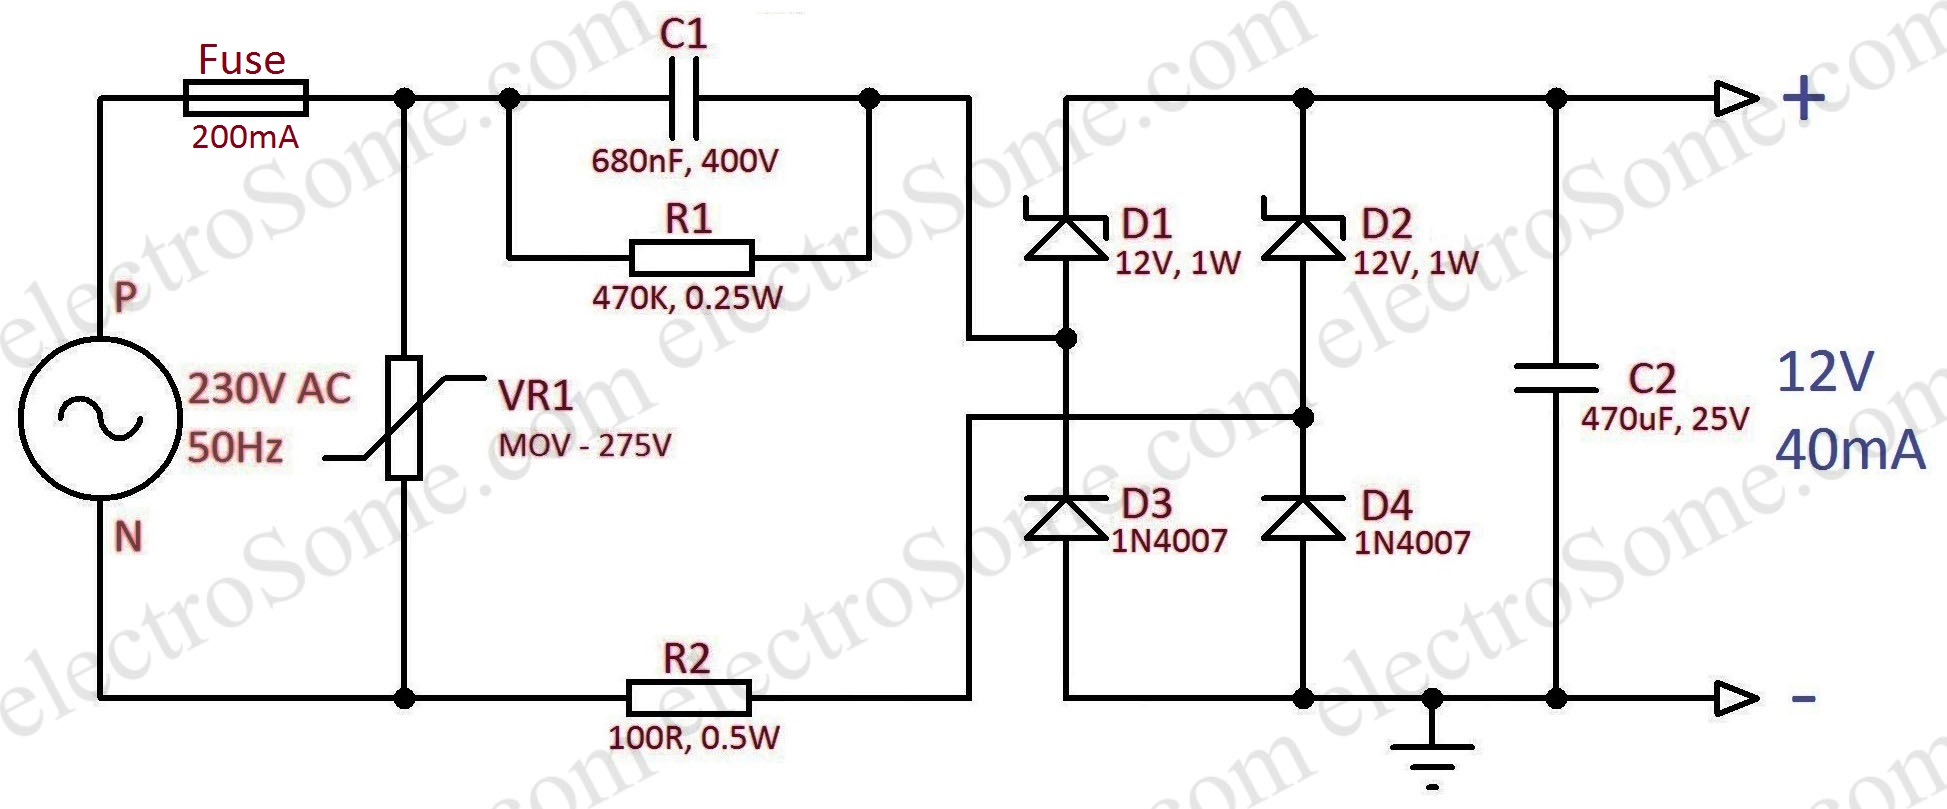 Transformerless Capacitor Power Supply Design Flashing Leds Is To Use A Single Transistor Or An Inverter Circuit 12v 40ma